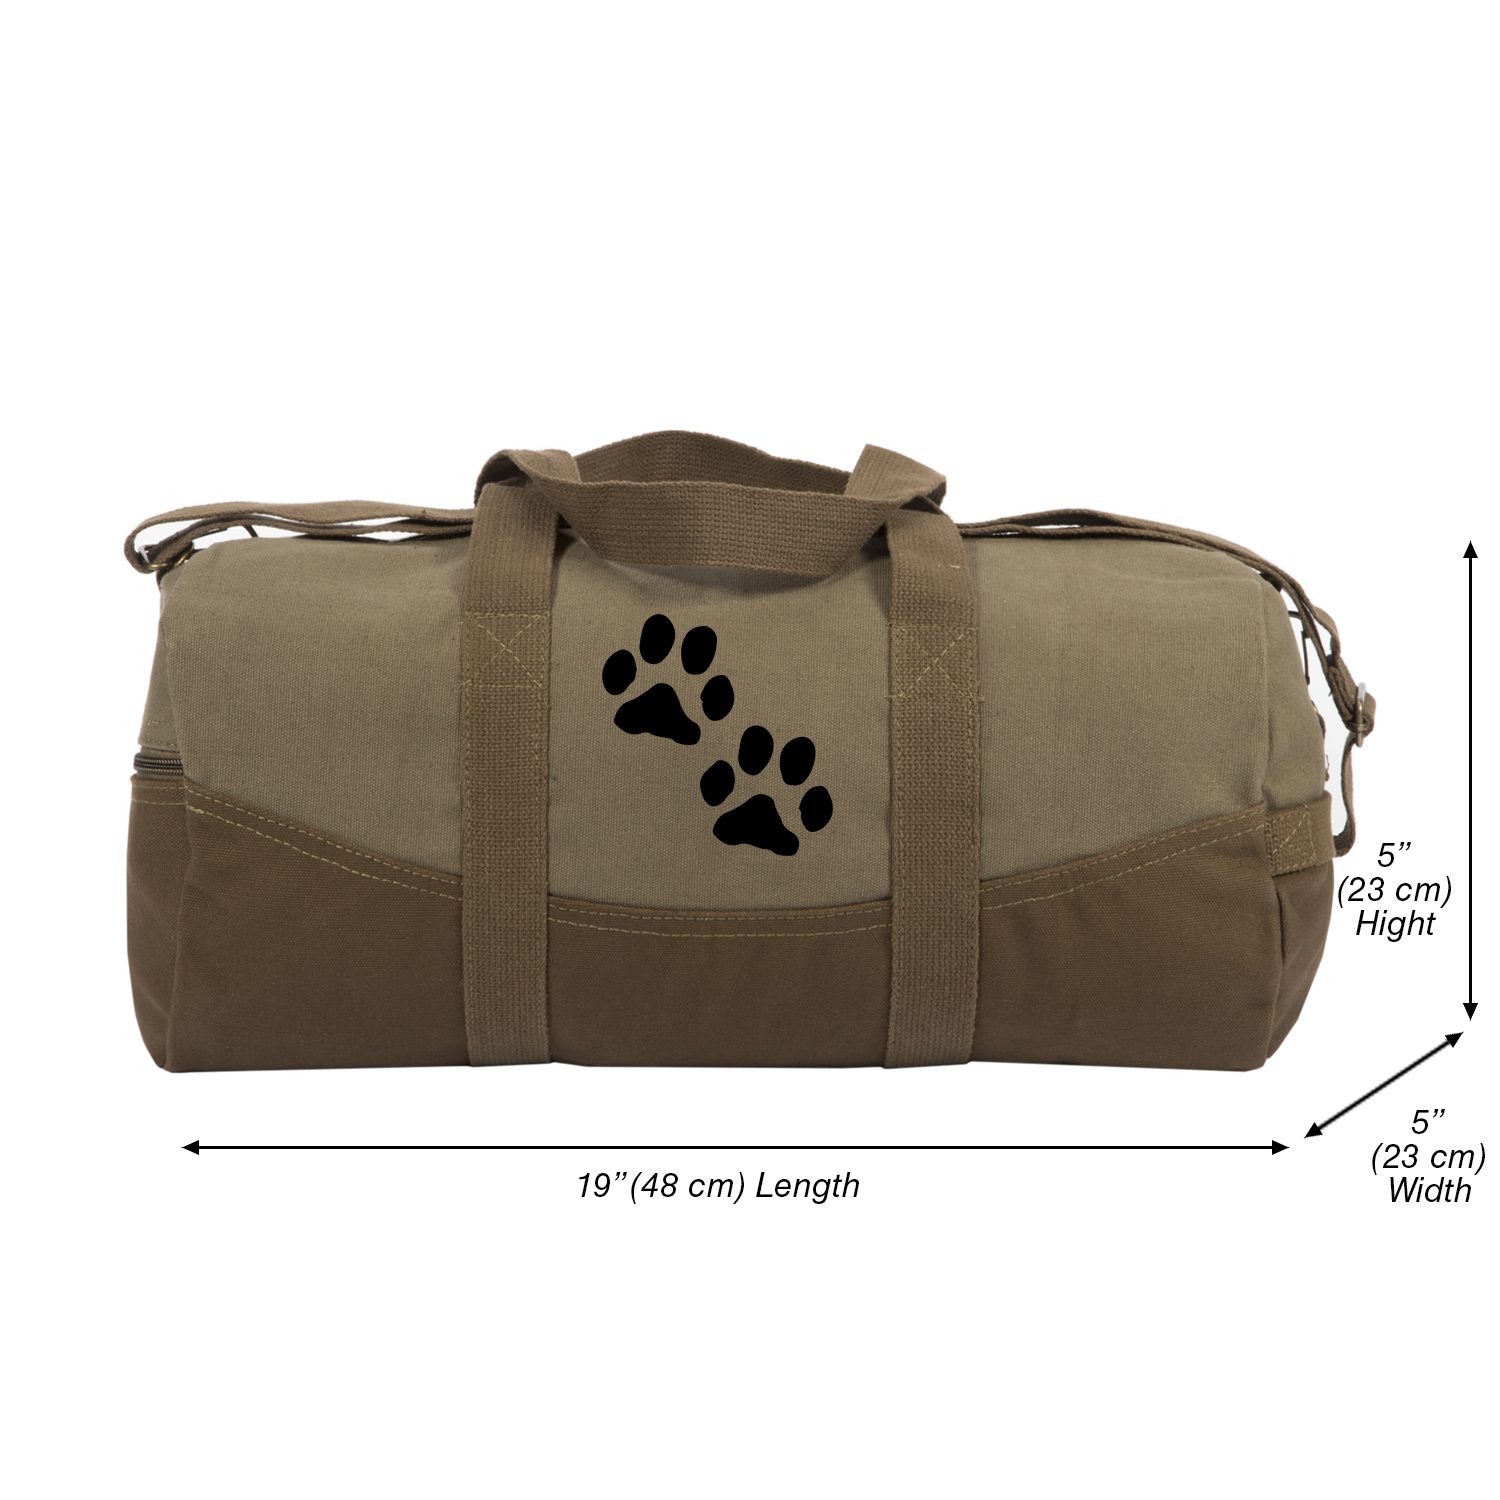 c18b49e109c7 Details about Dog Paw Prints Canvas Duffel Bag, Two Tone Brown & Black with  Detachable Strap